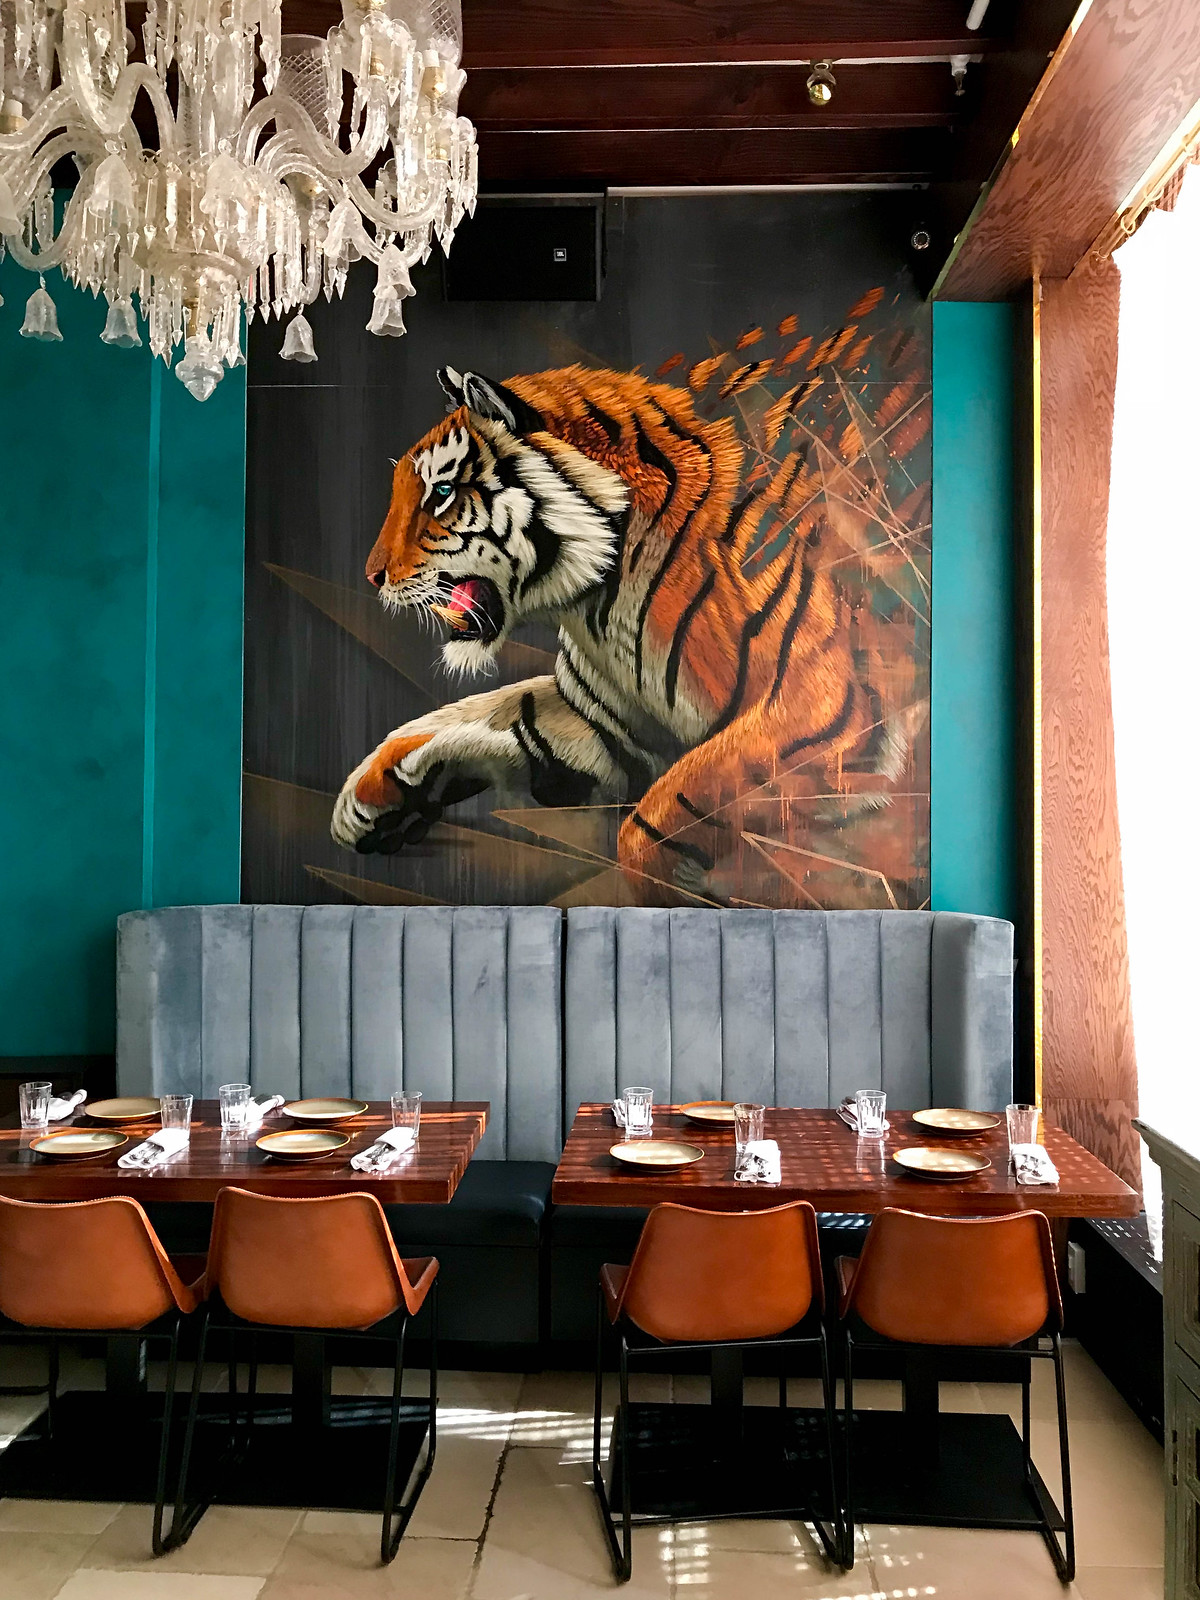 Gupshup New York Indian Restaurant Interior Decor Tiger Painting Velvet Blue Bench